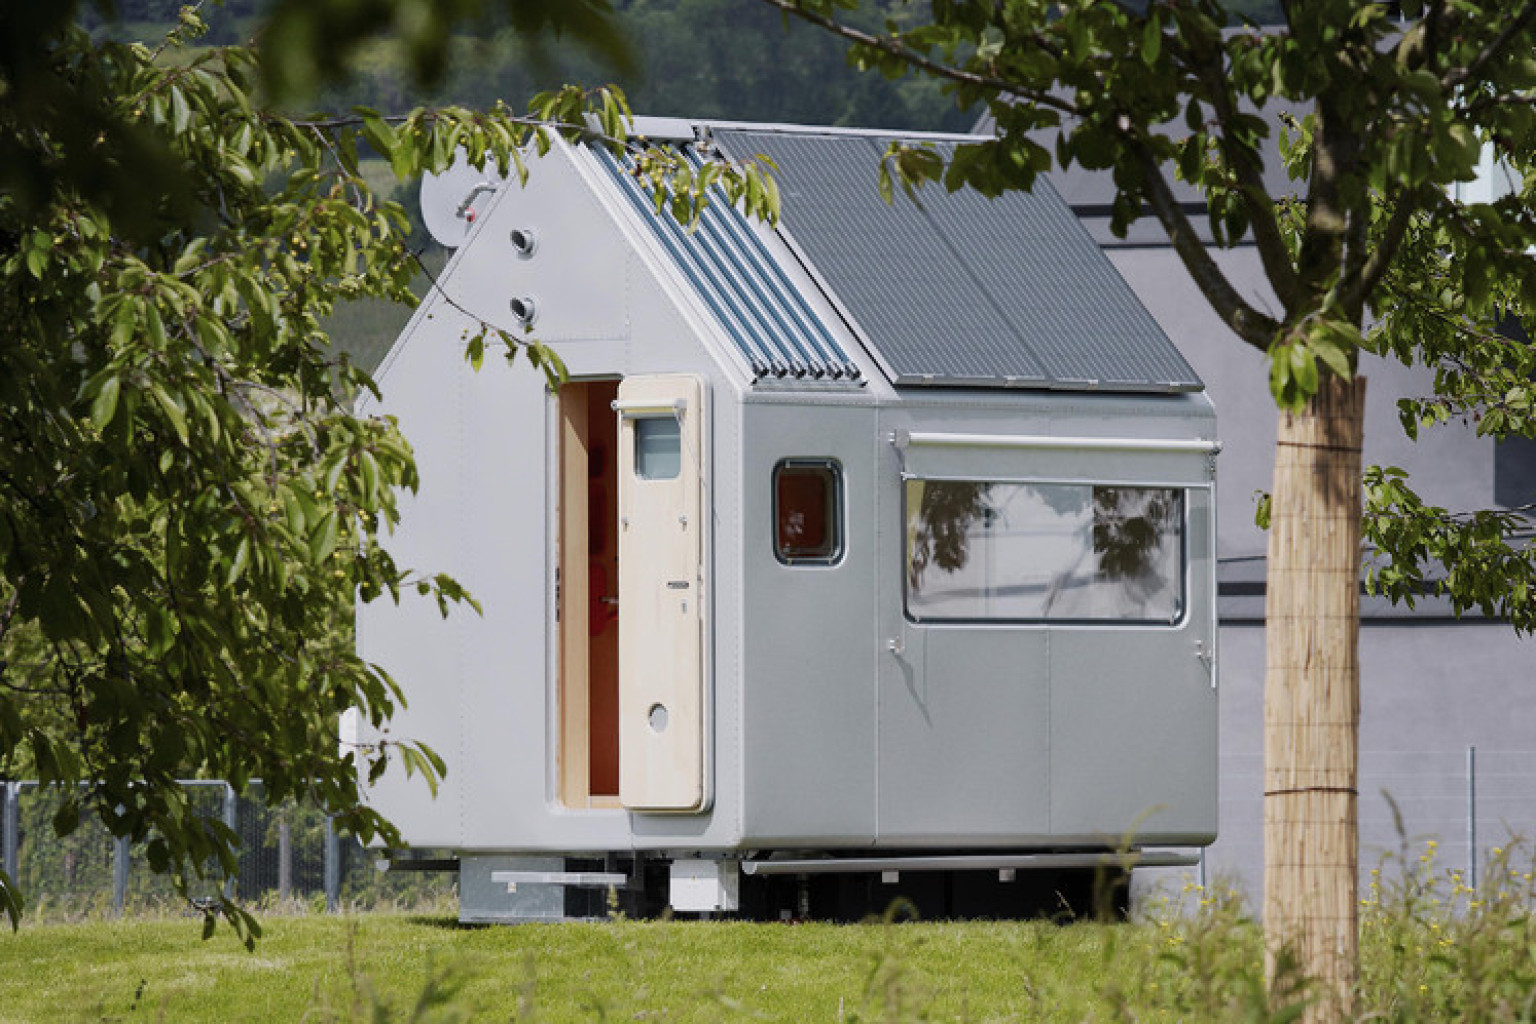 Renzo piano 39 s 39 diogene 39 tiny home proves this architect for Small house design facebook